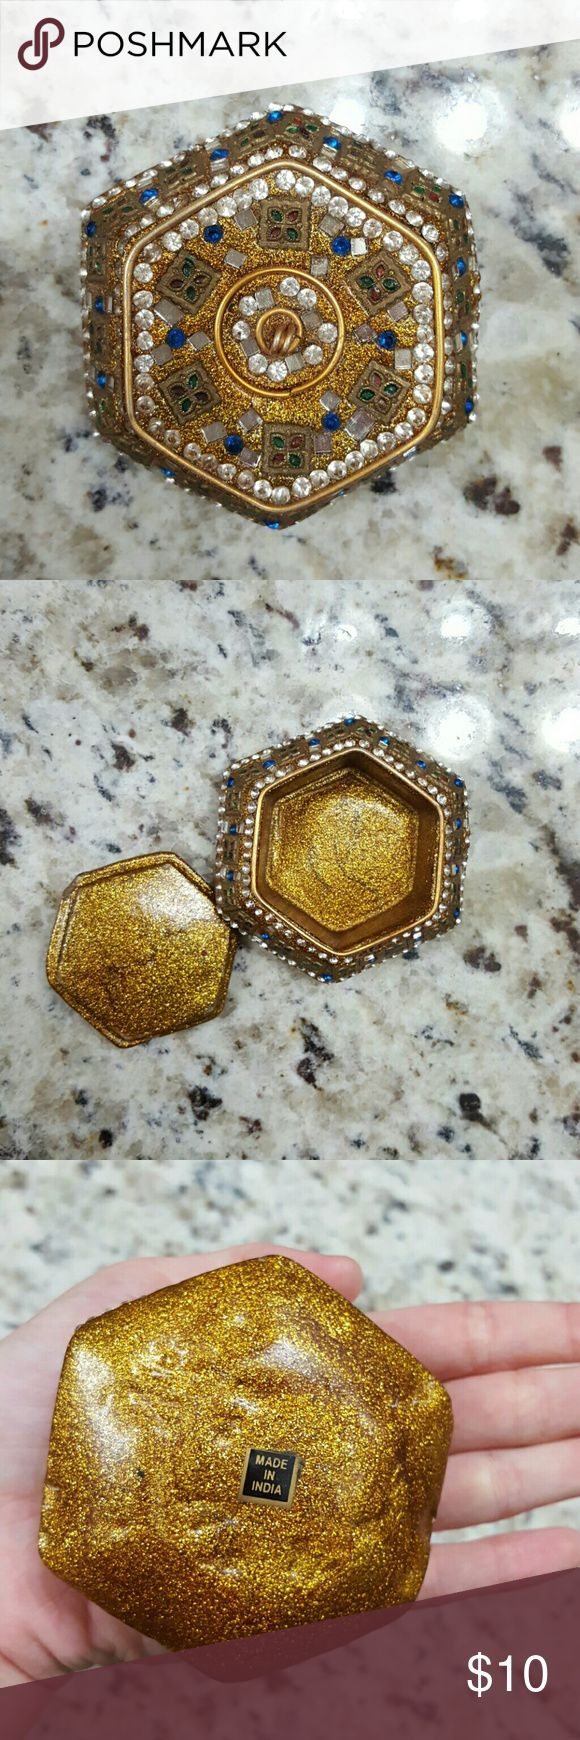 Jewelry box Gold glitter box with stones,mirror, and jewels. Perfect for rings or earrings. Made in india. Other